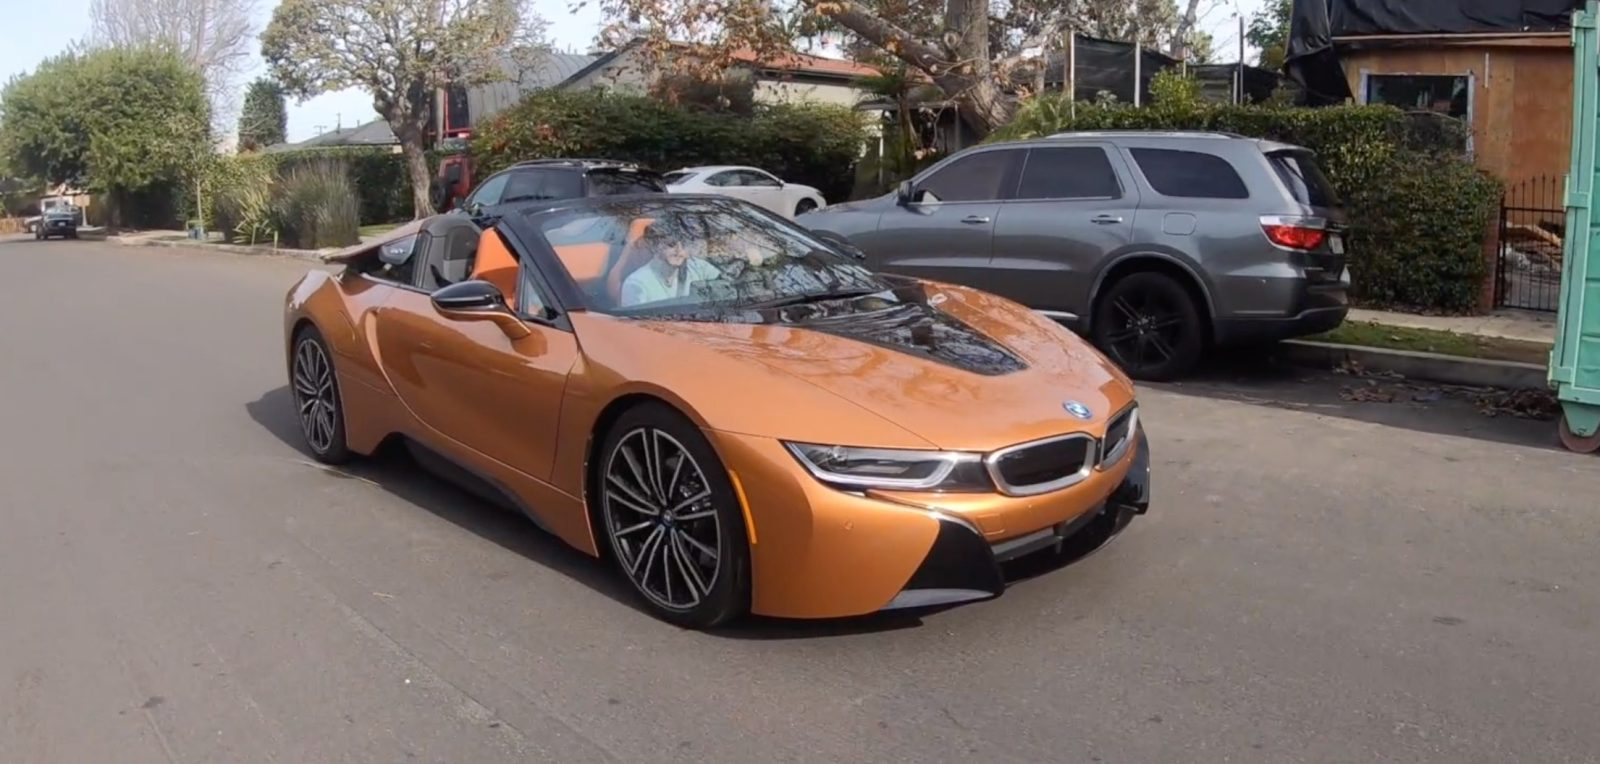 Bmw Said To Favor All Electric For Next Gen I8 Sports Car